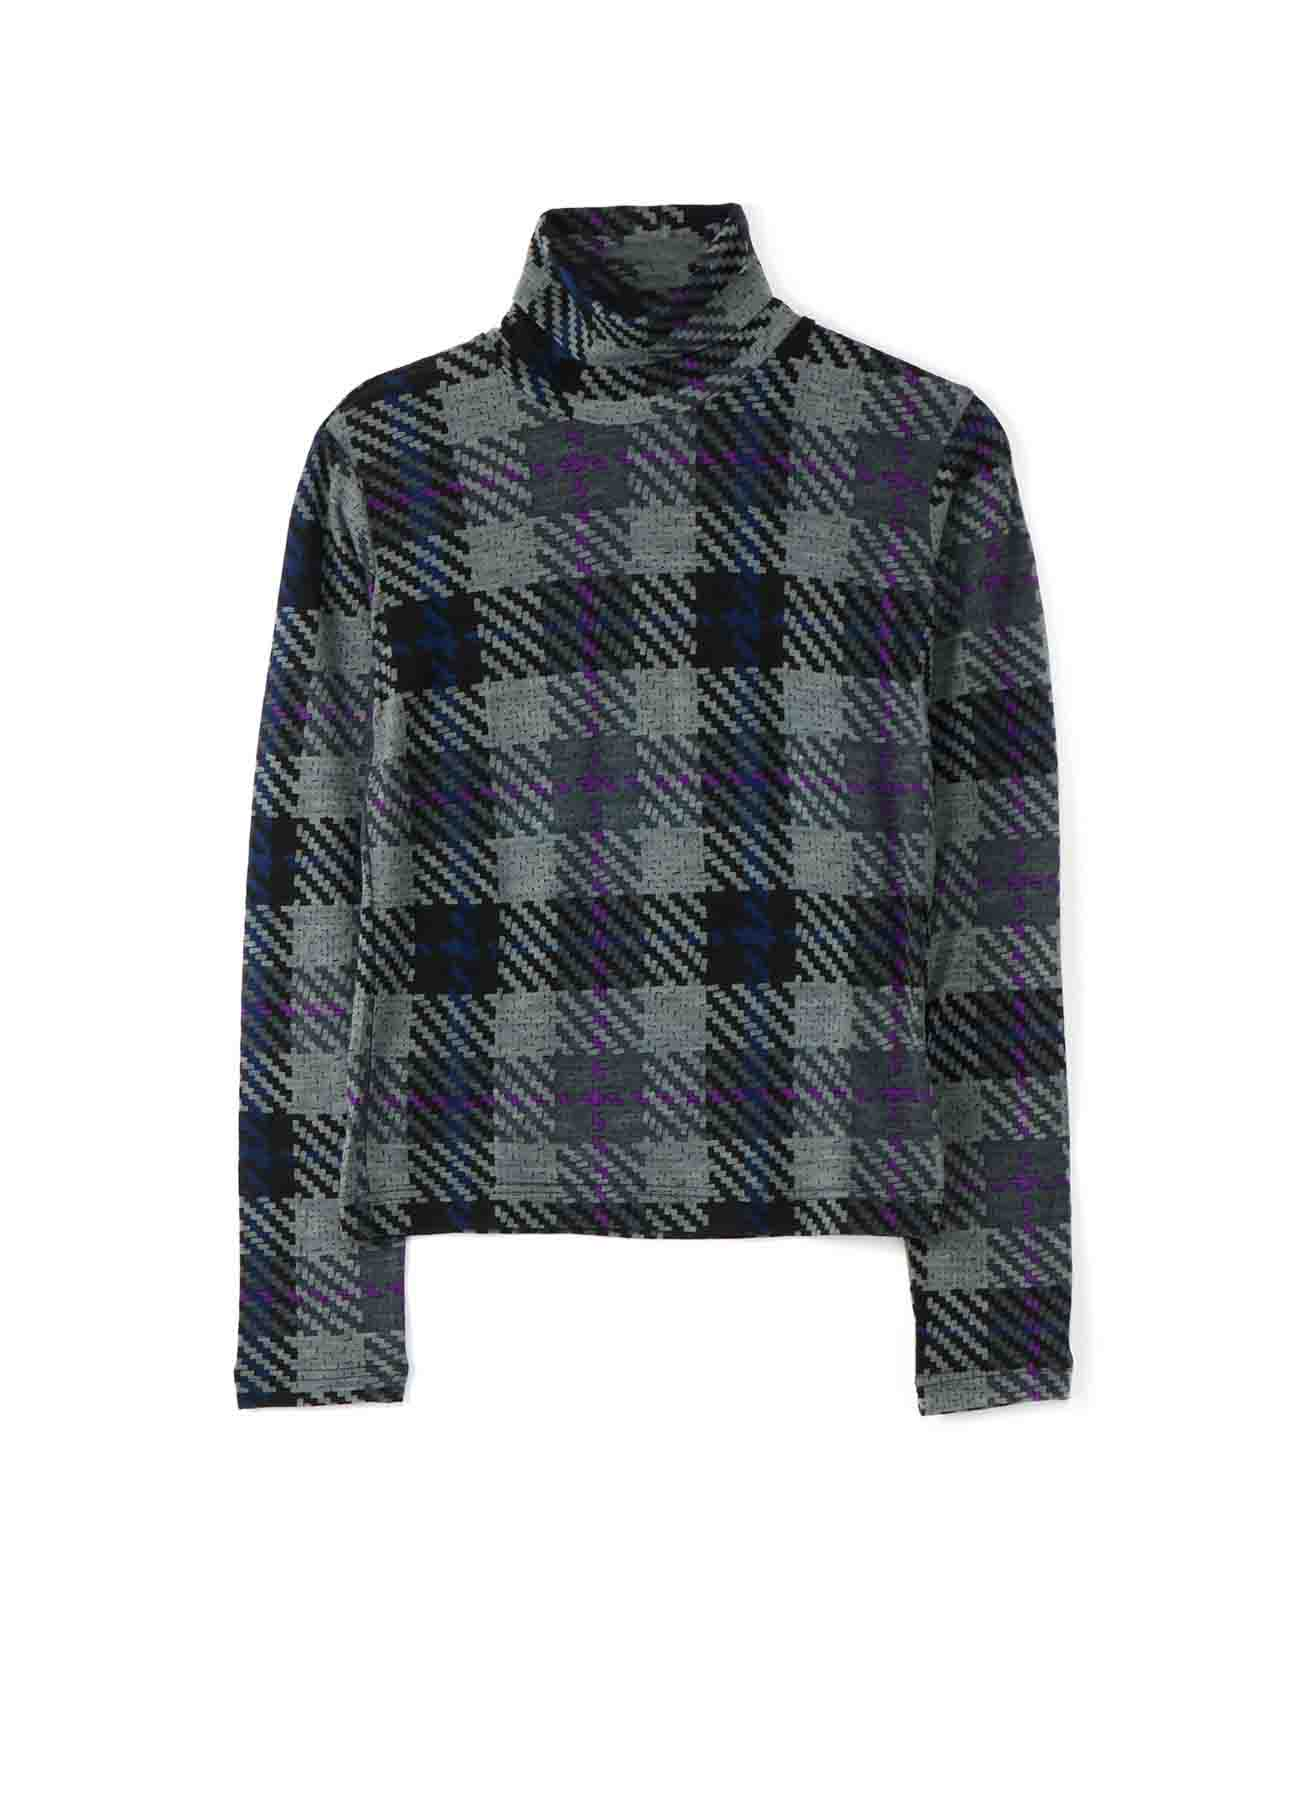 PLAID PRINT HIGHT NECK LONG SLEEVE T-SHIRT